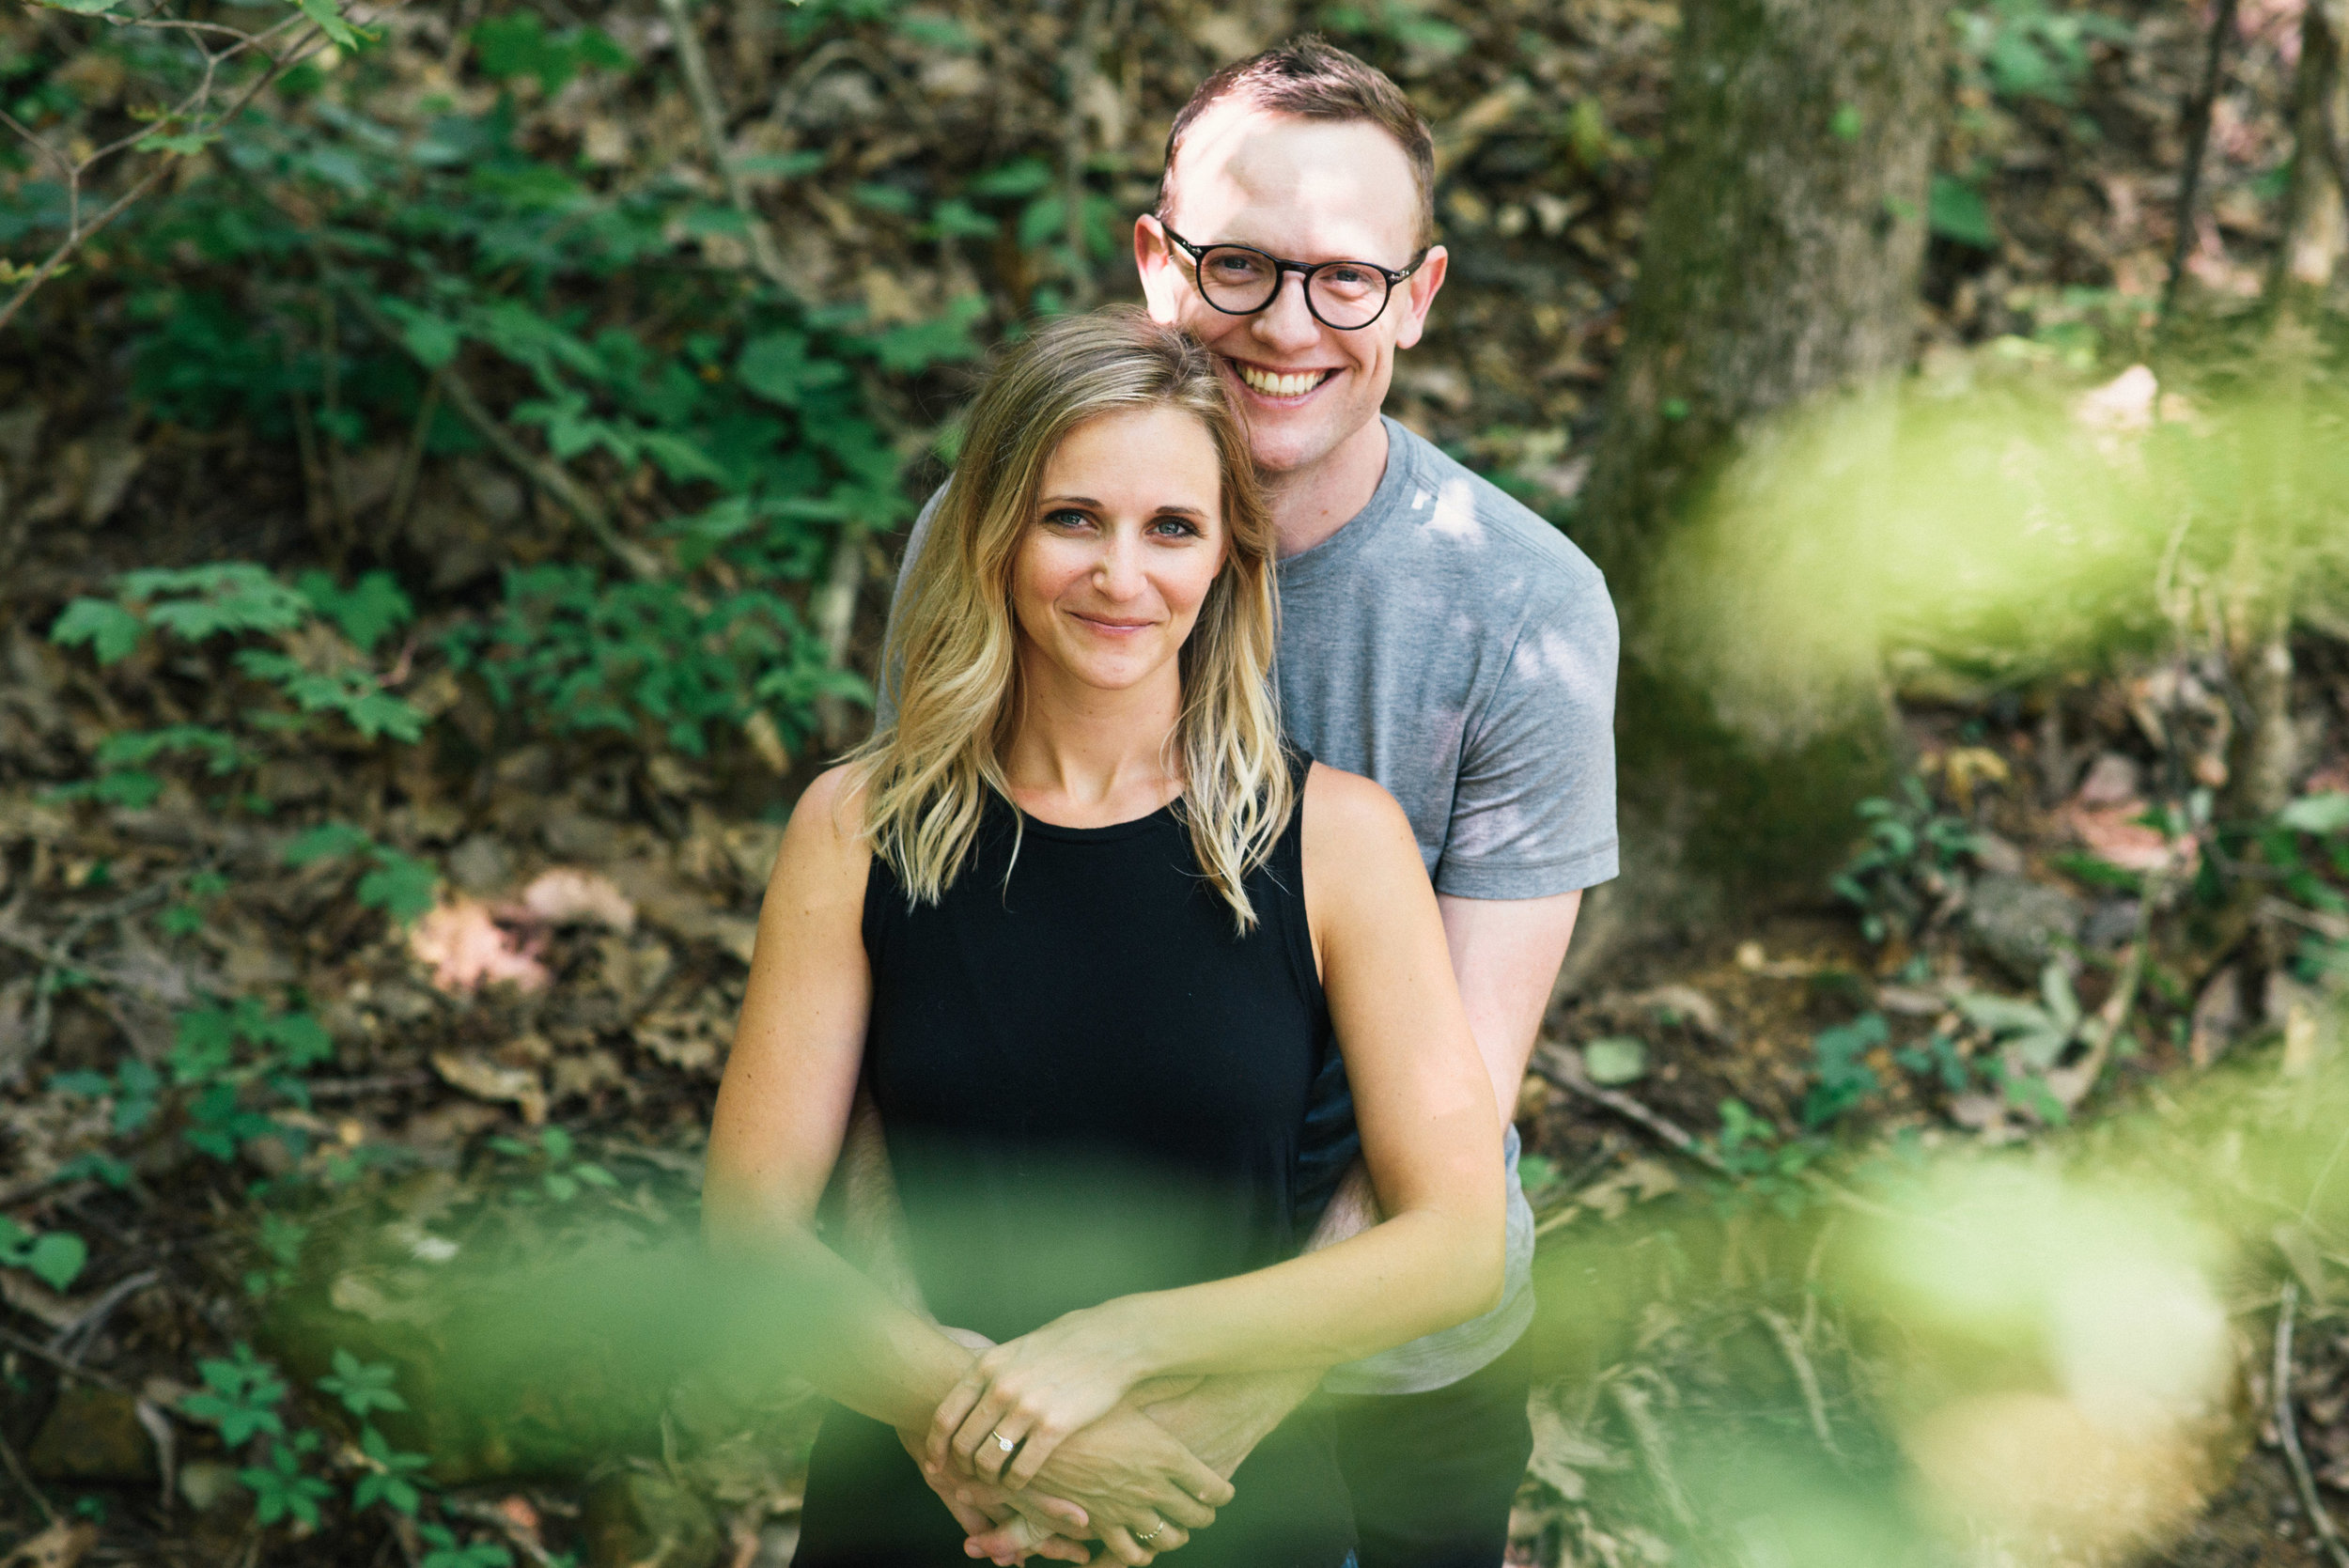 taryn-and-jackson-engagement-save-the-date (213 of 219).jpg